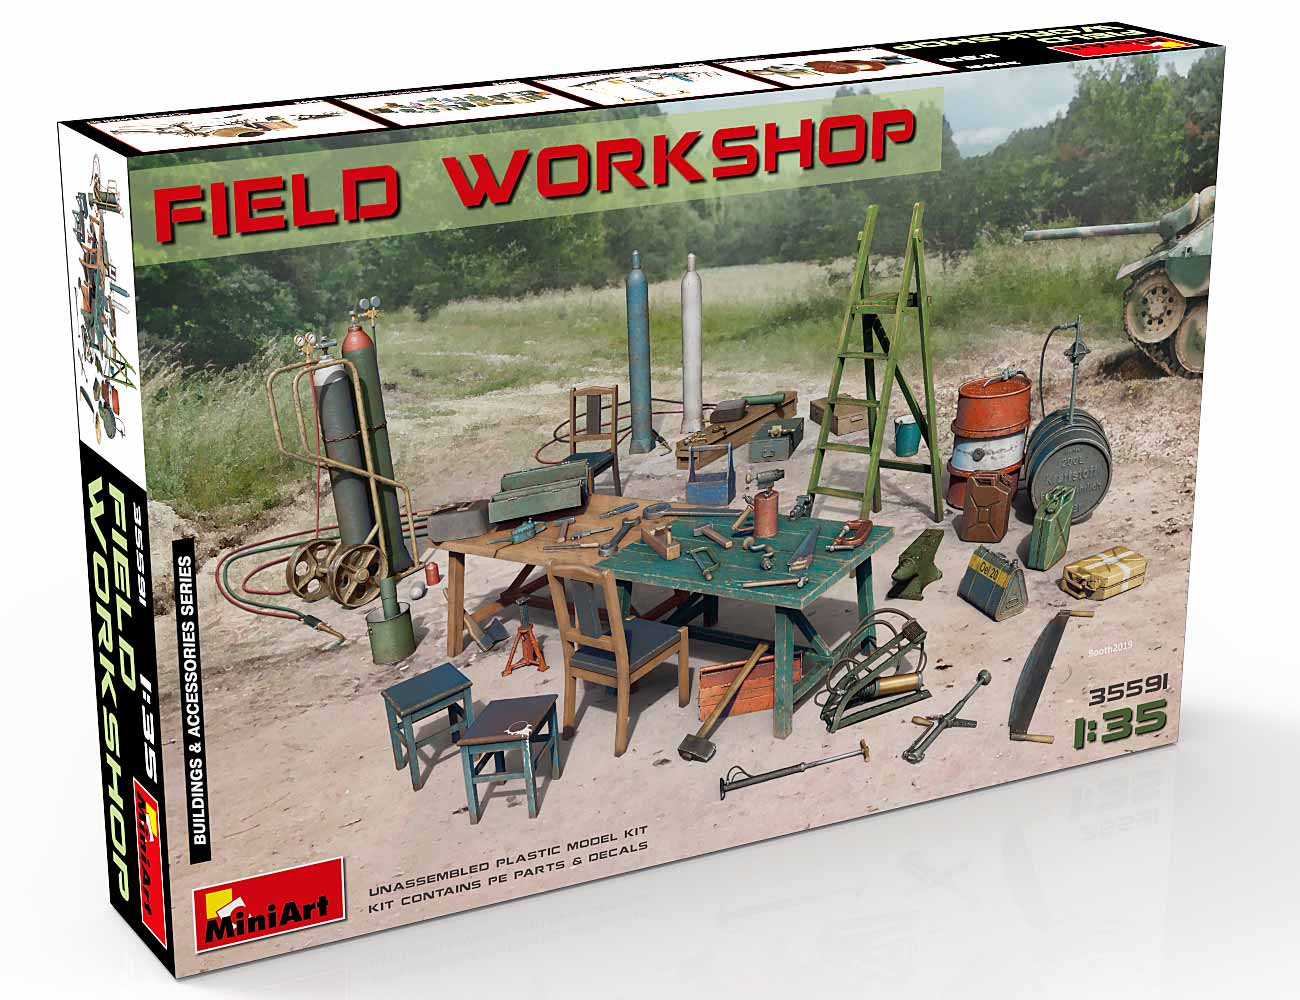 New Photos of Kit: 35591 FIELD WORKSHOP